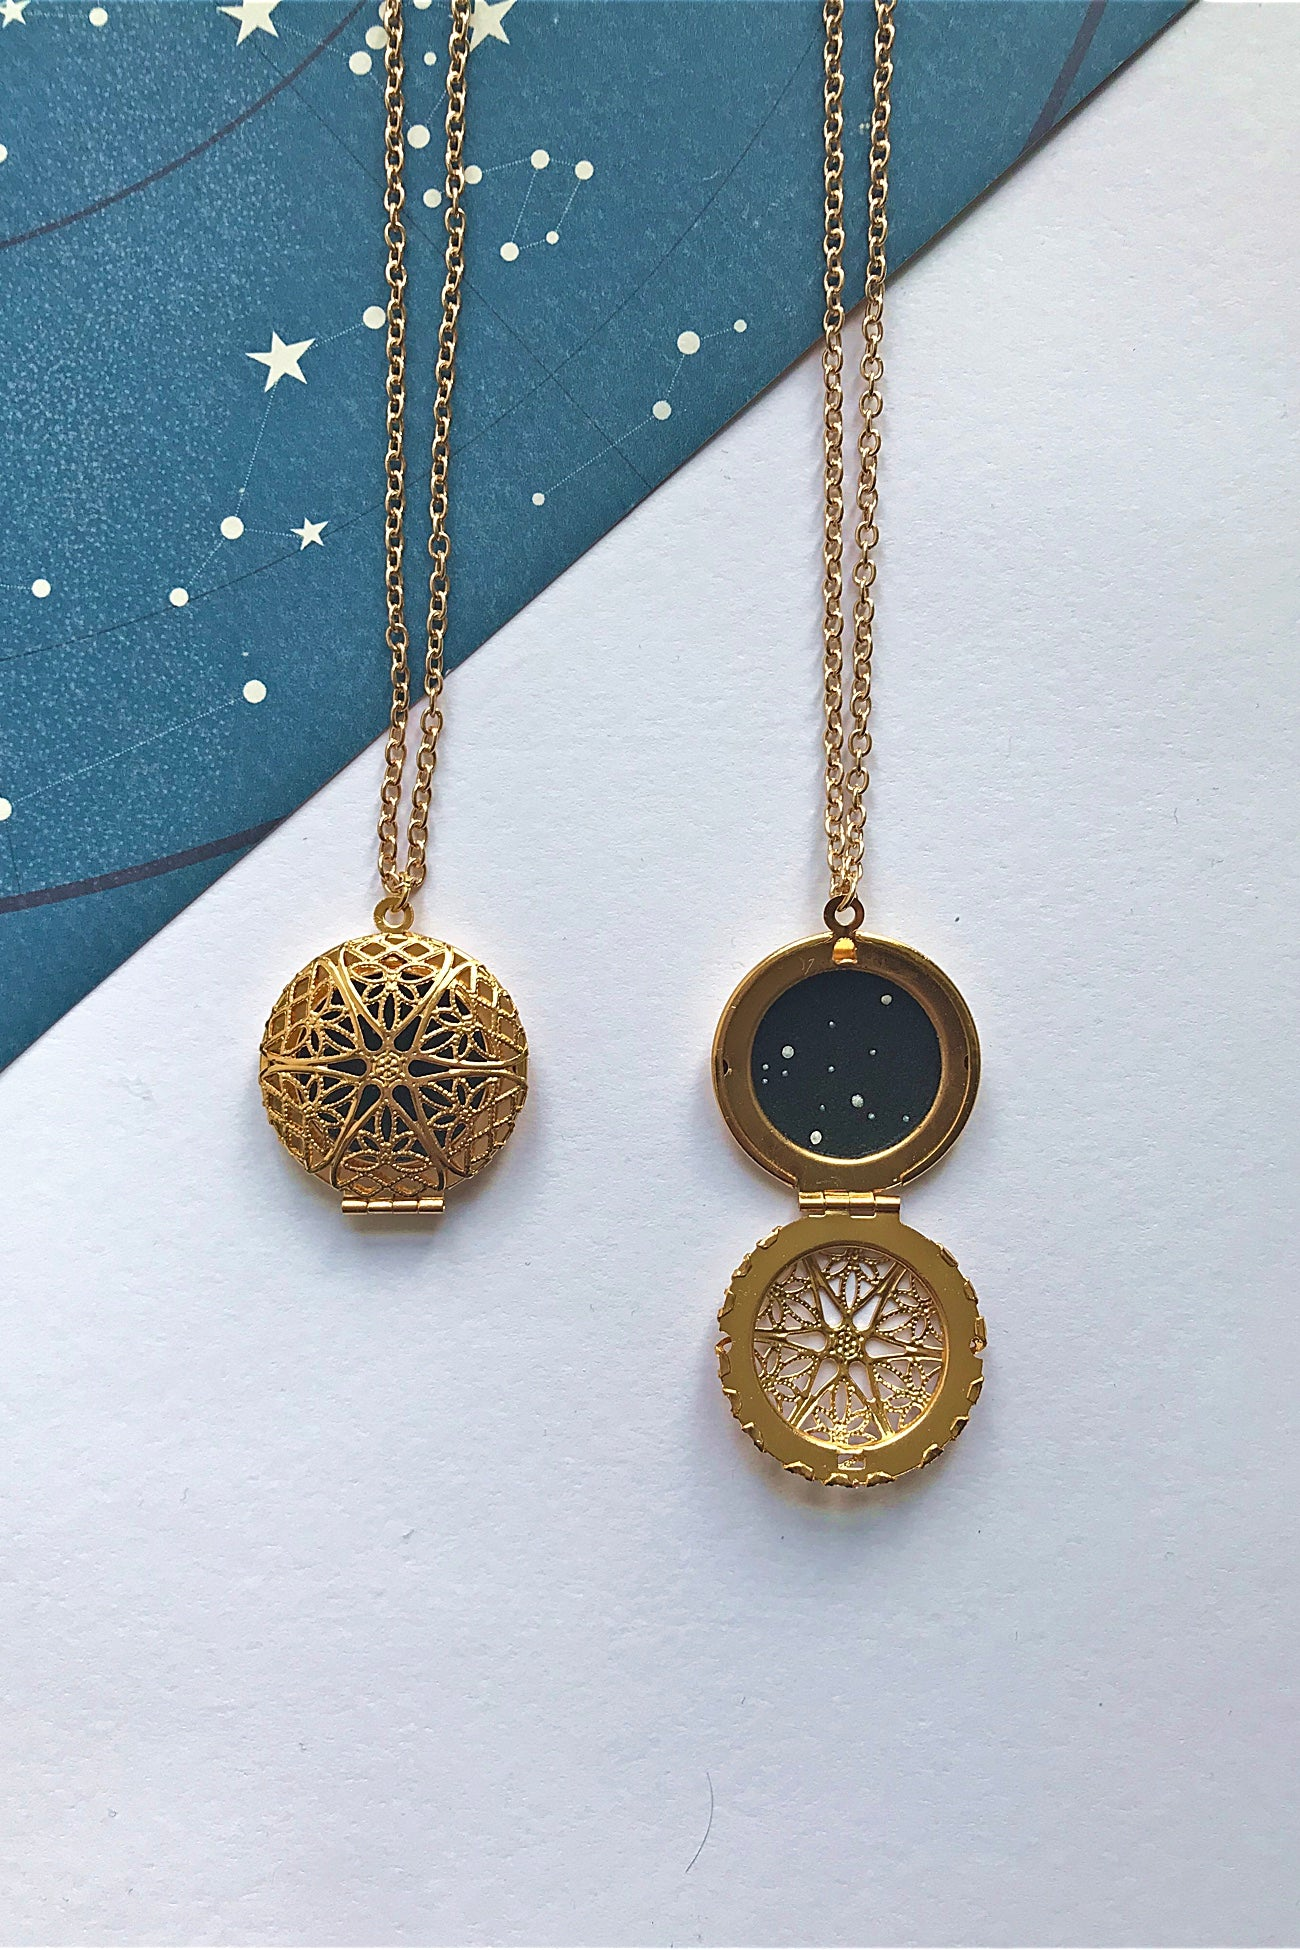 Aquarius constellation locket